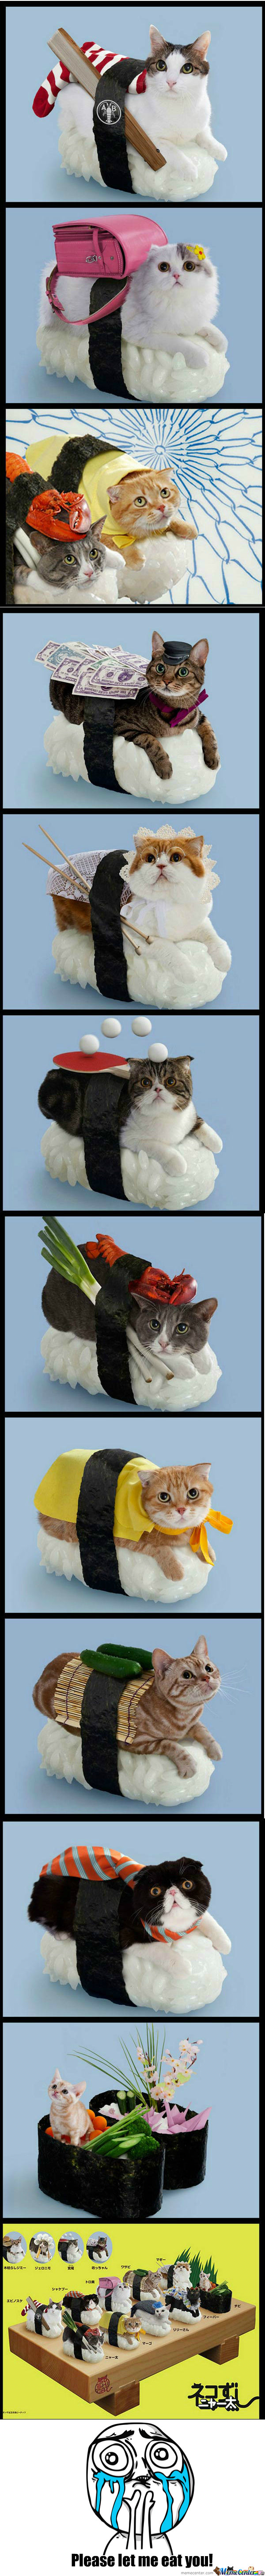 Rmx Sushi Cats Compilation By Bluefun Meme Center